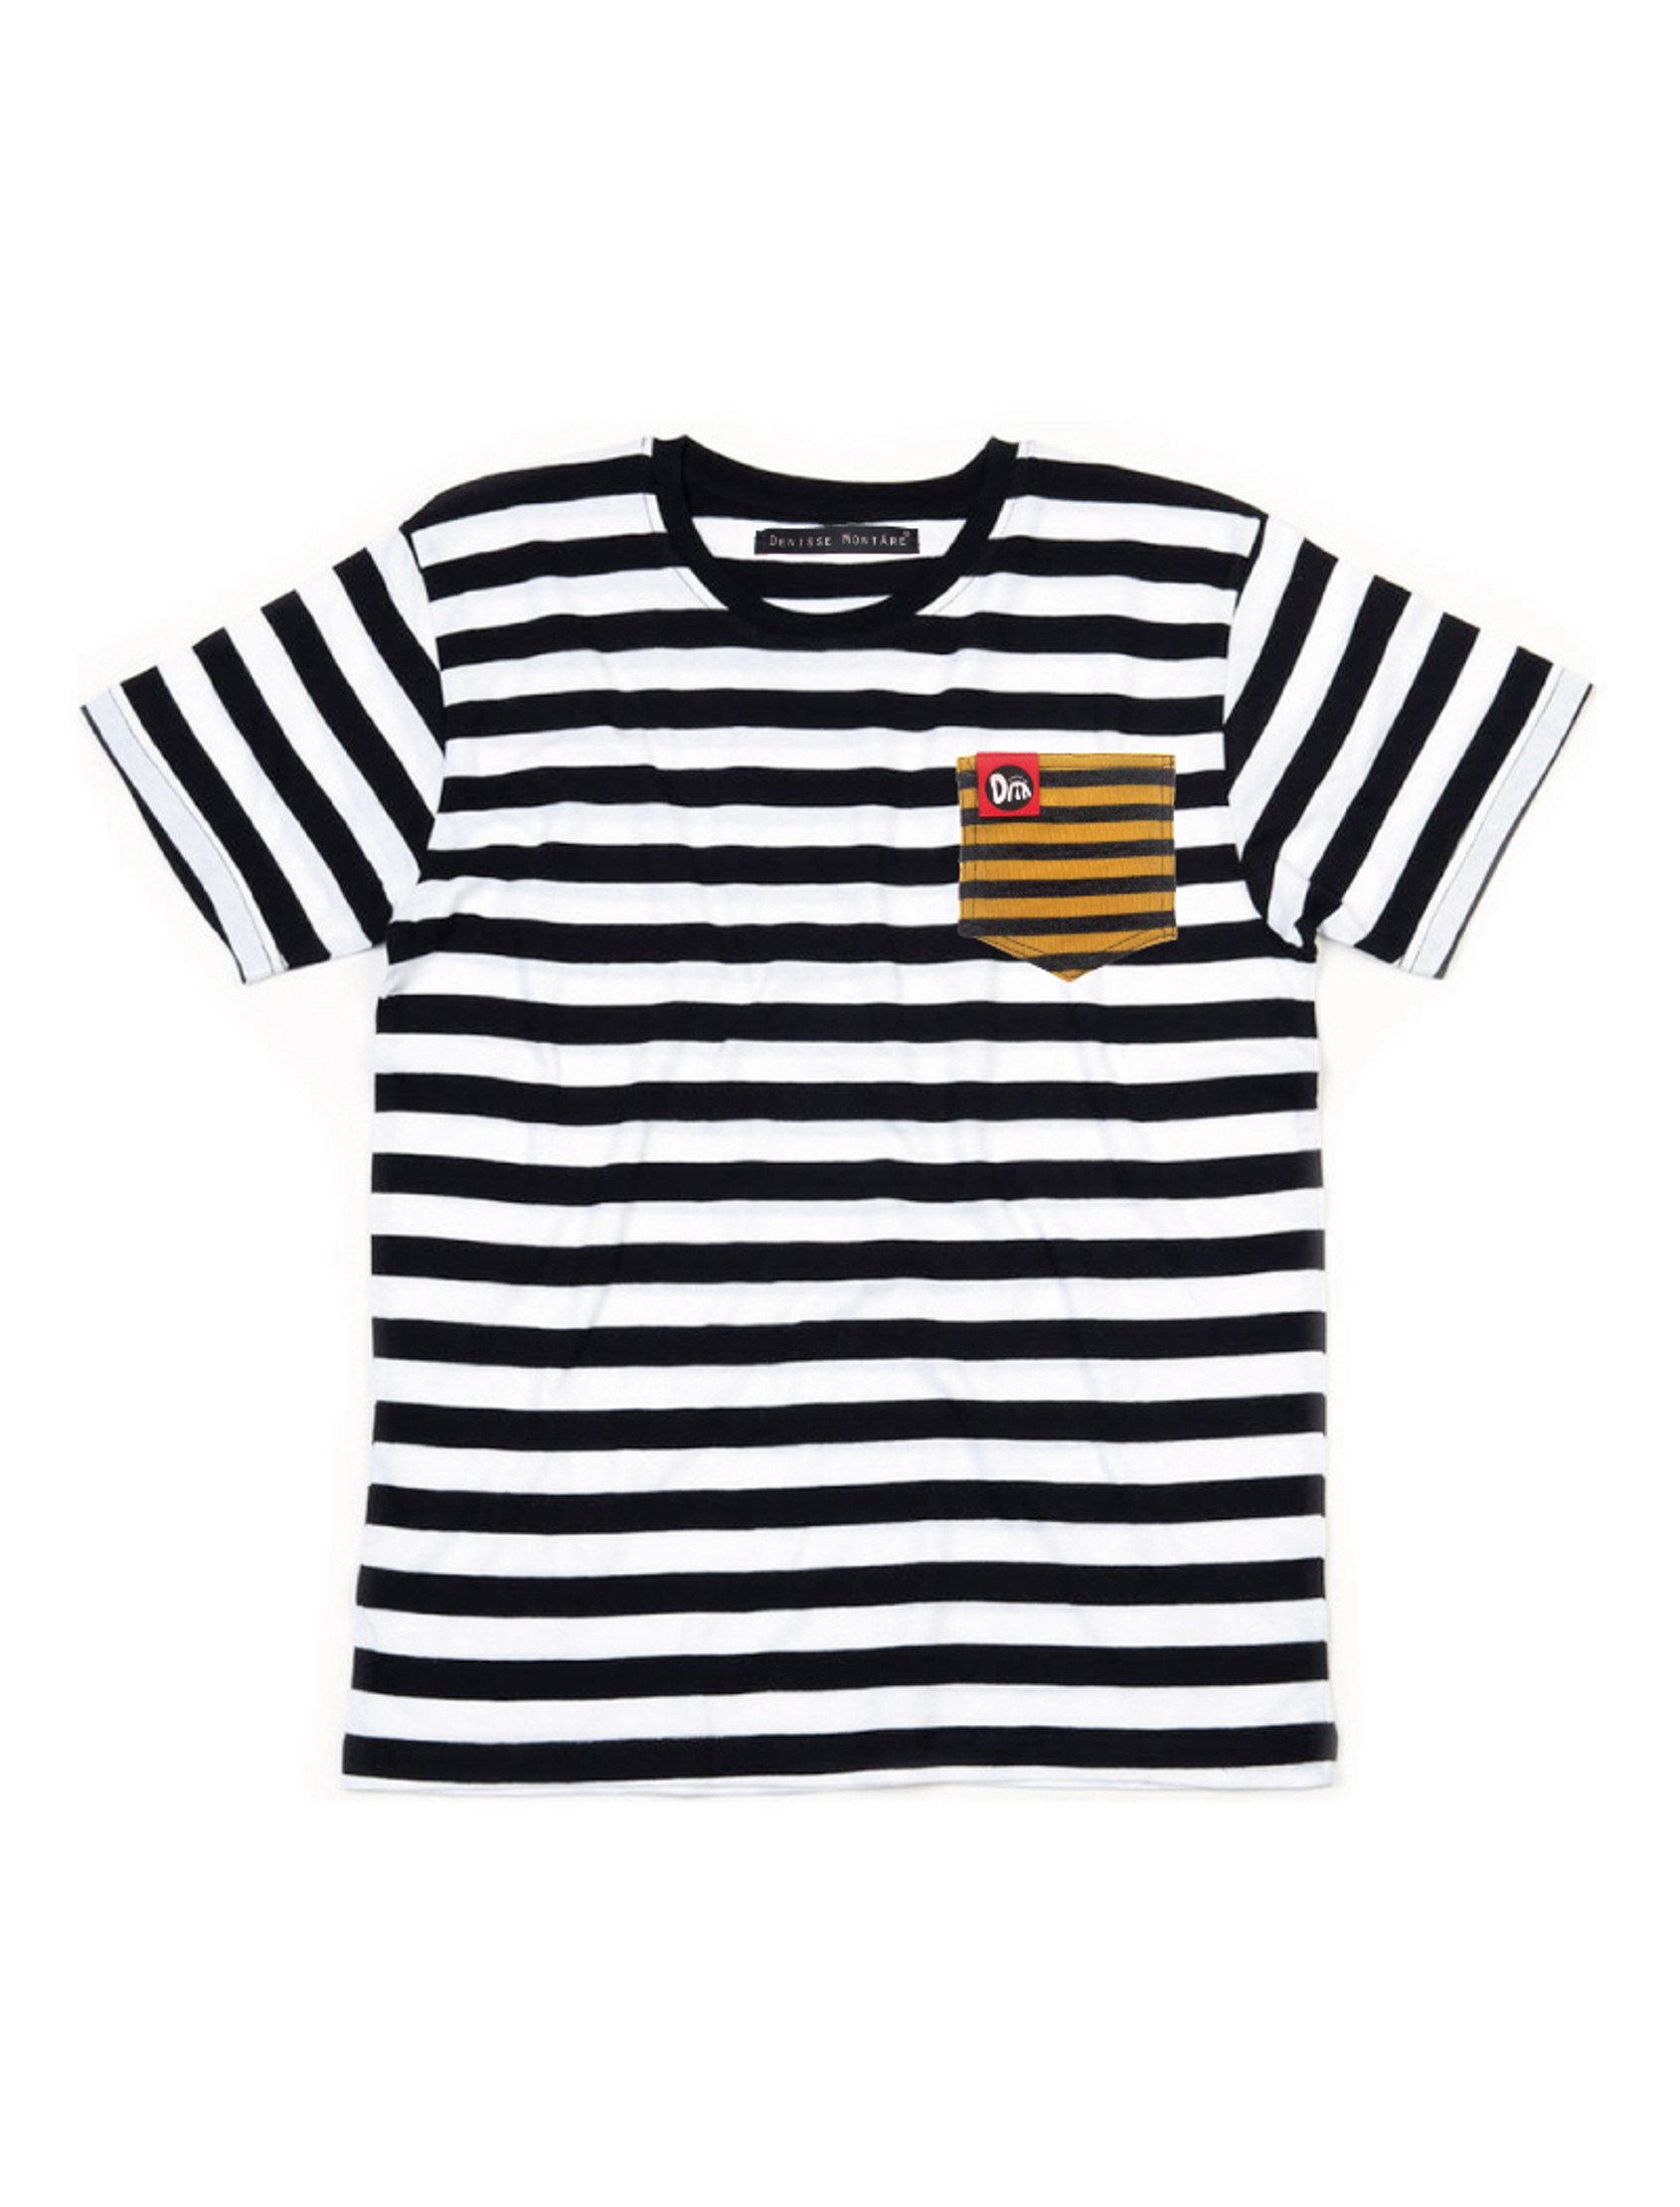 CamisetaYELLOWSTRiPESPOCKET_01